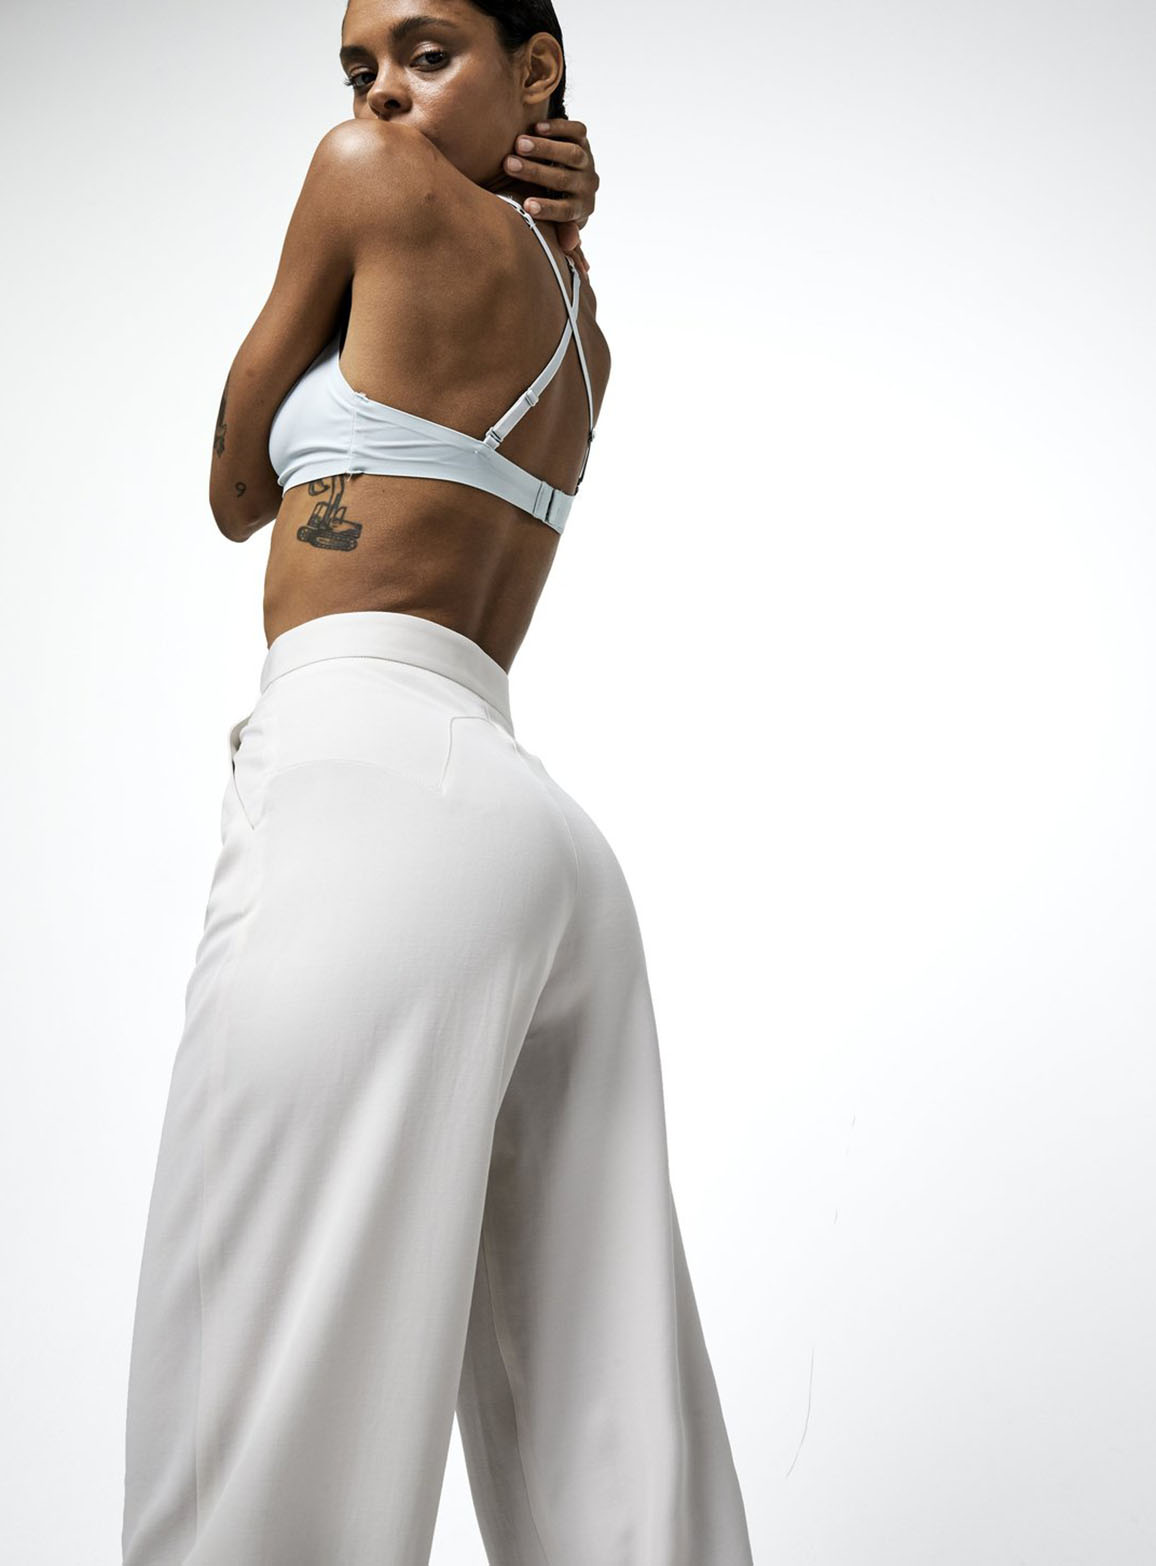 Marbella Ivoire trousers